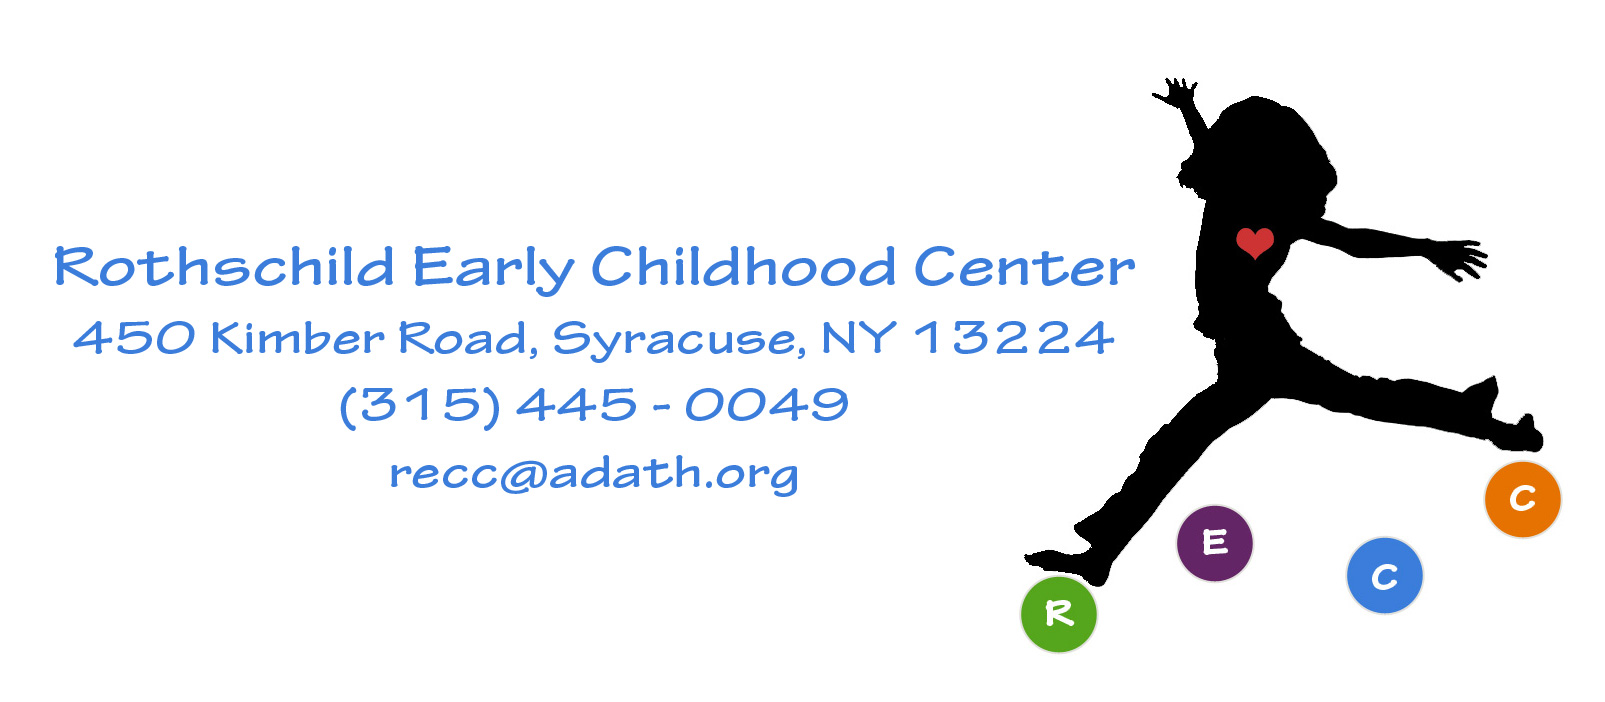 Temple Adath Rothschild Early Childhood Center